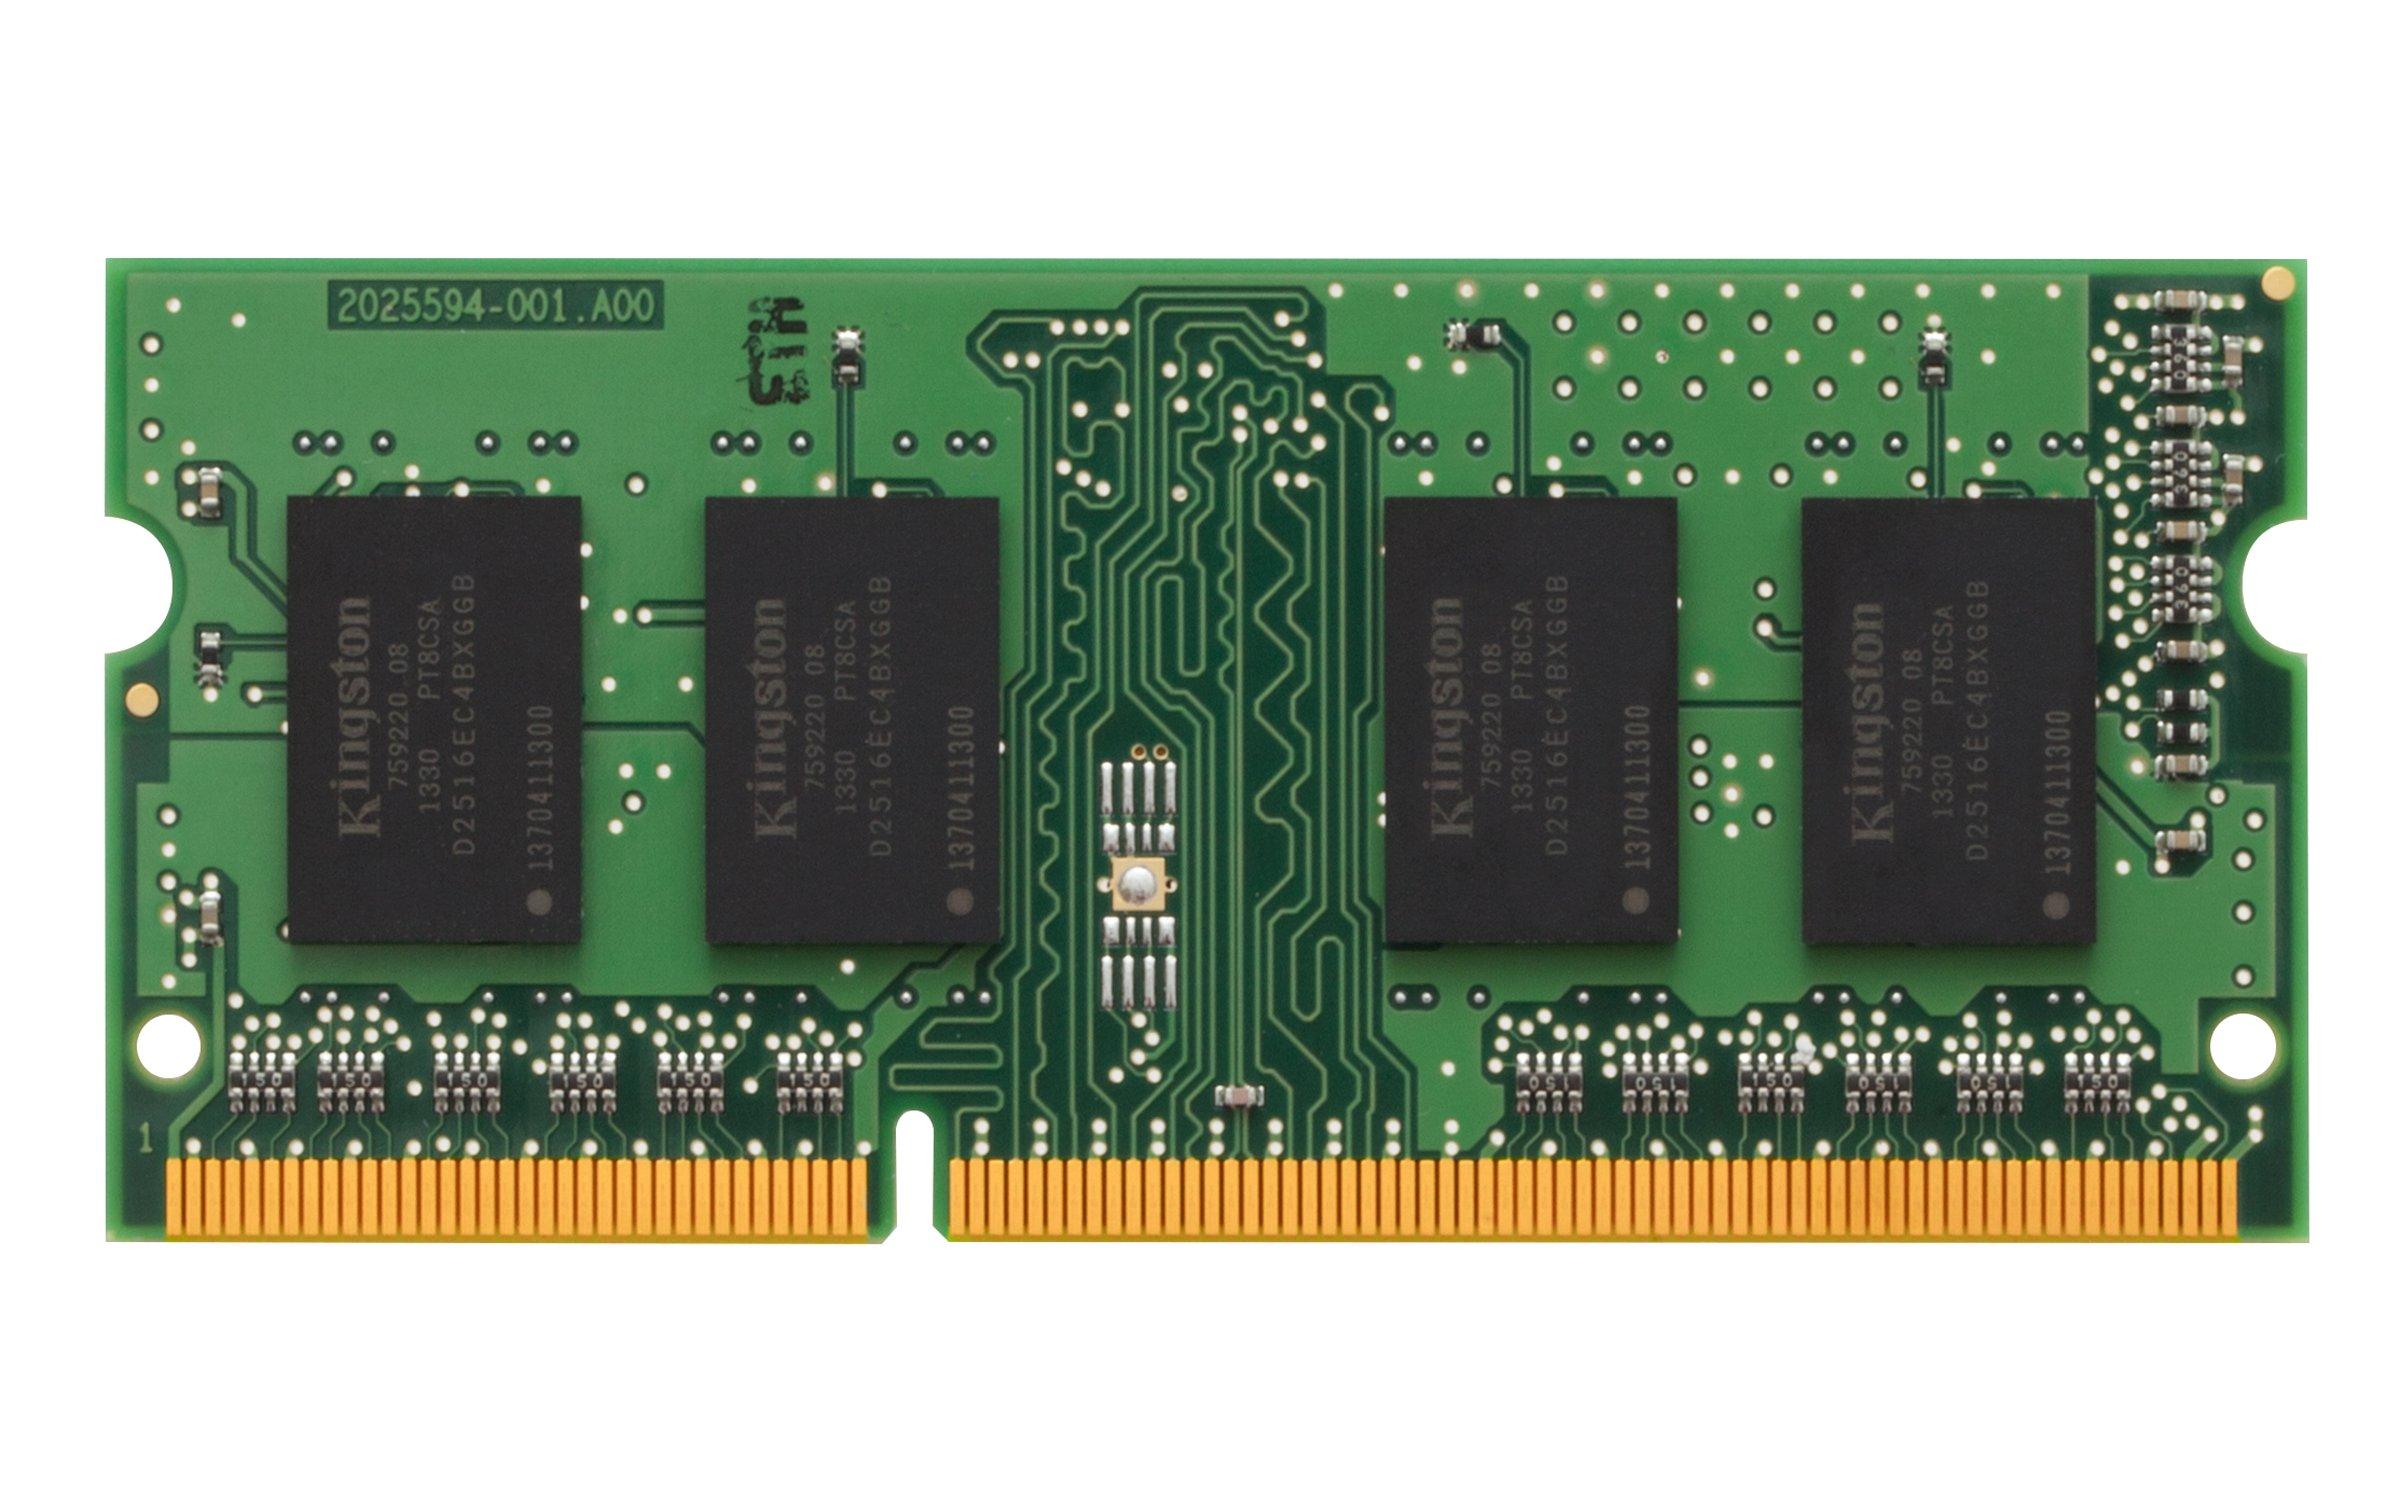 Kingston 4gb Module - Ddr3 1600mhz - 4 Gb - Ddr3 Sdram - 1600 Mhz - 204-pin - Sodimm (kcp316ss8-4)